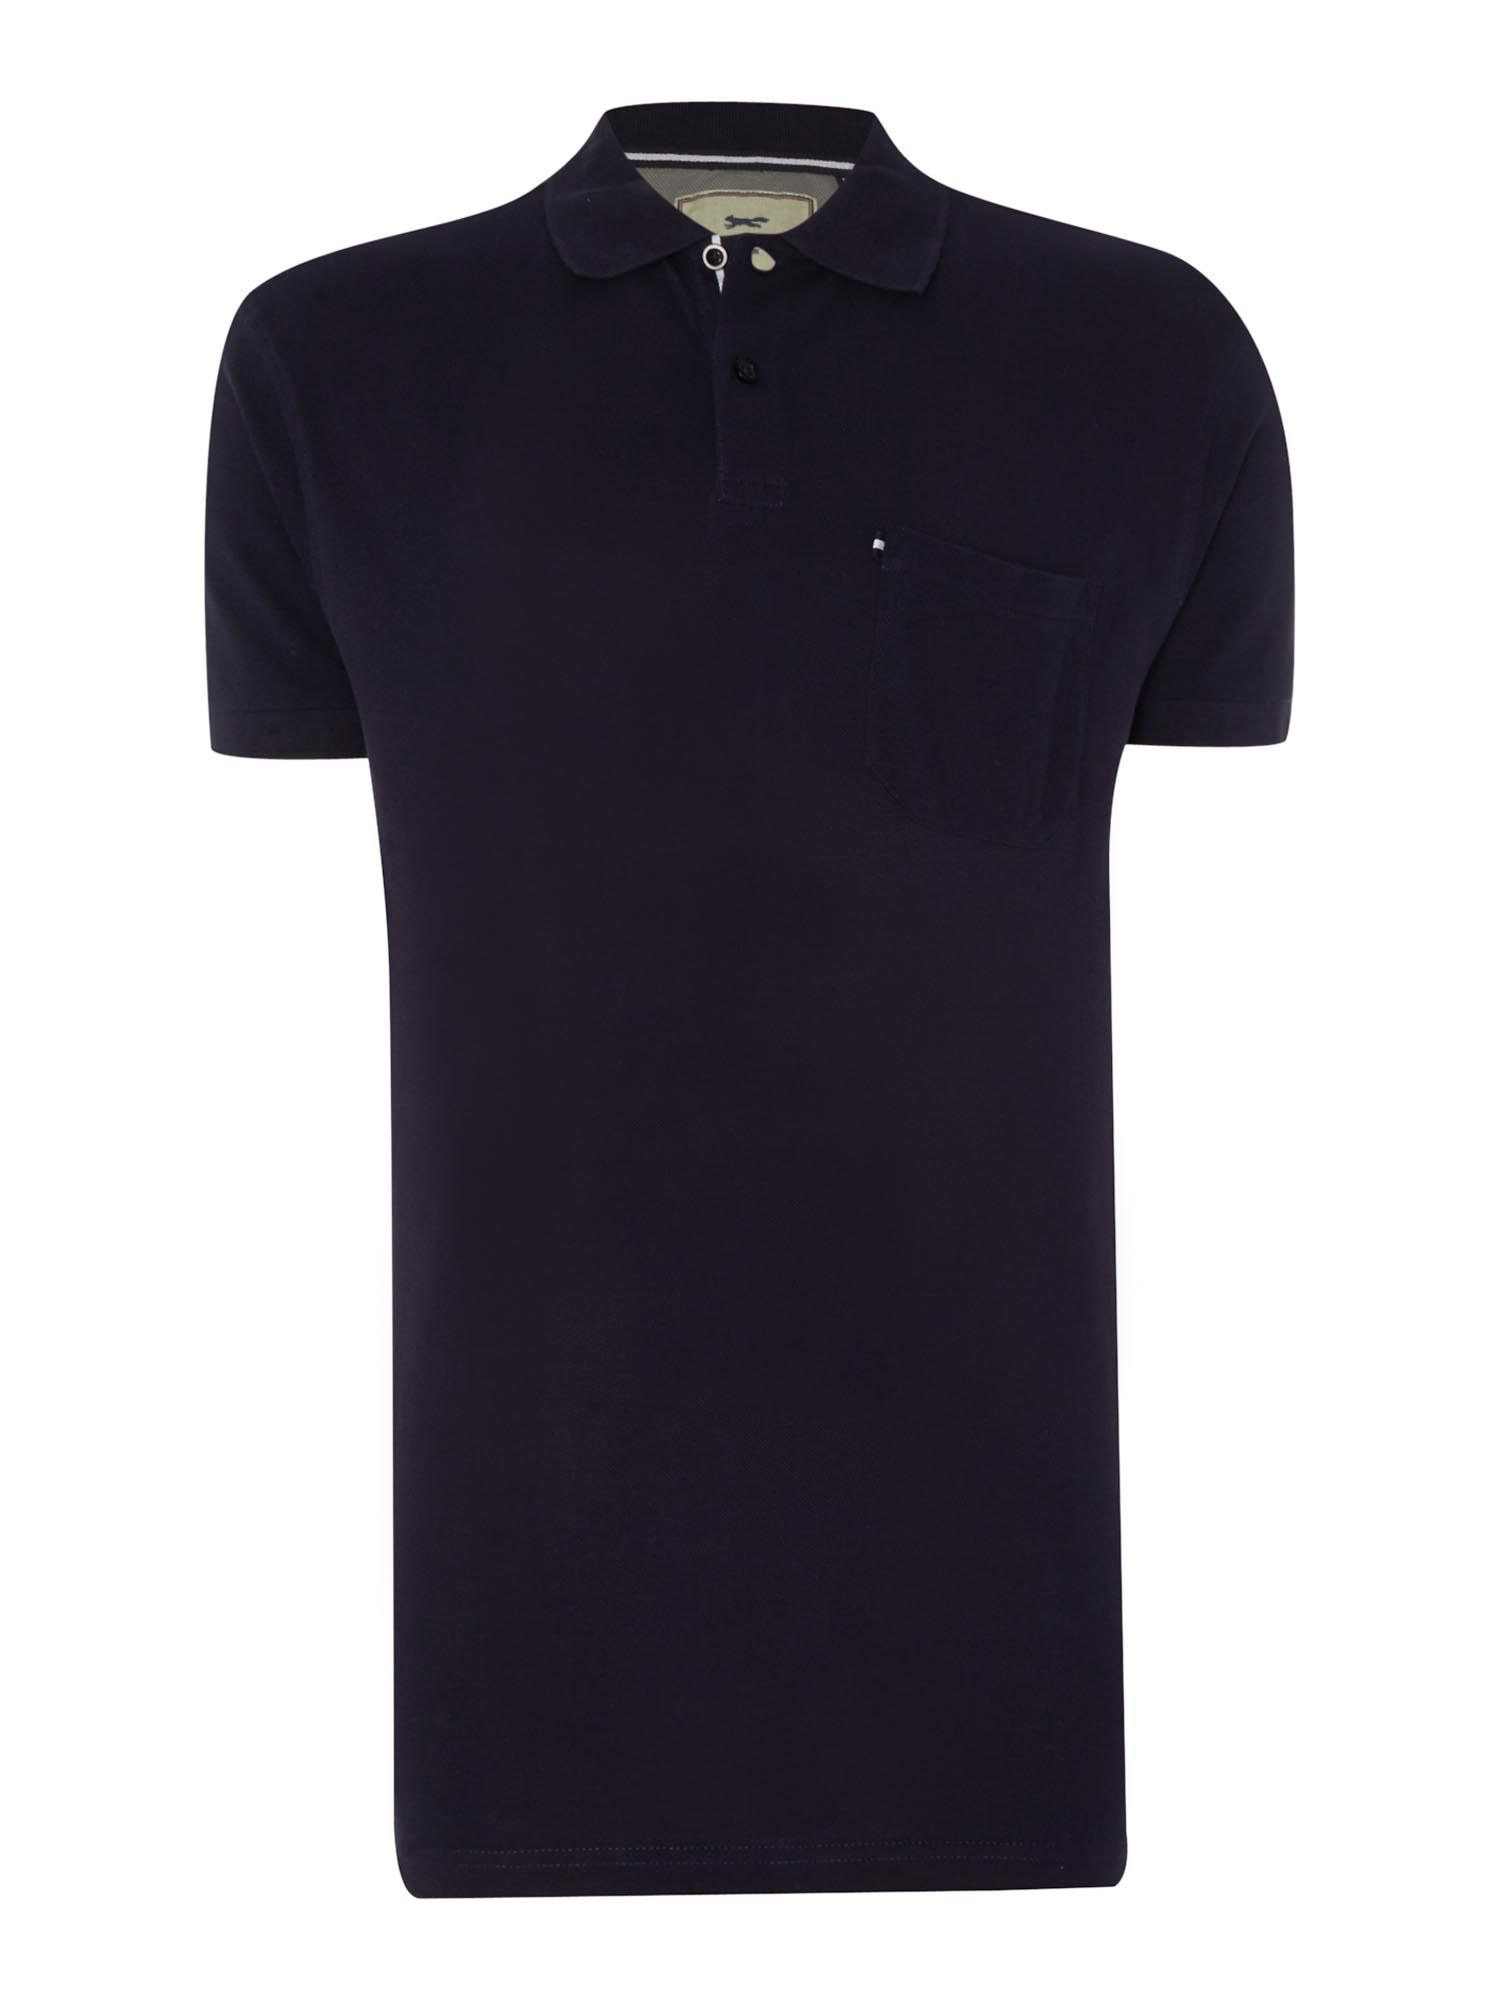 Paul costelloe plain polo regular fit polo shirt in blue for Plain navy polo shirts